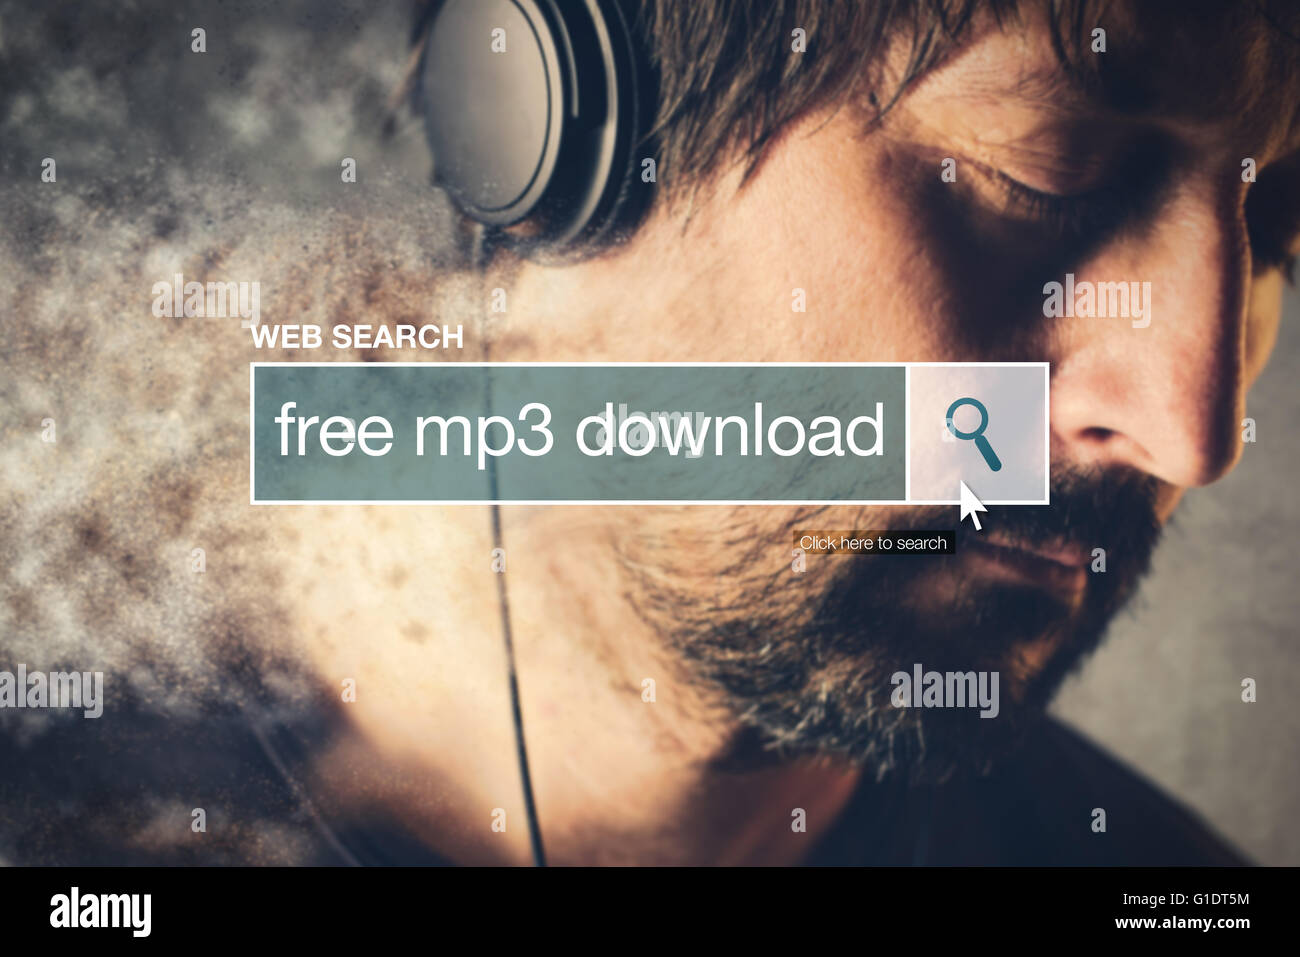 Free mp3 download web search bar glossary term on world wide web network - Stock Image